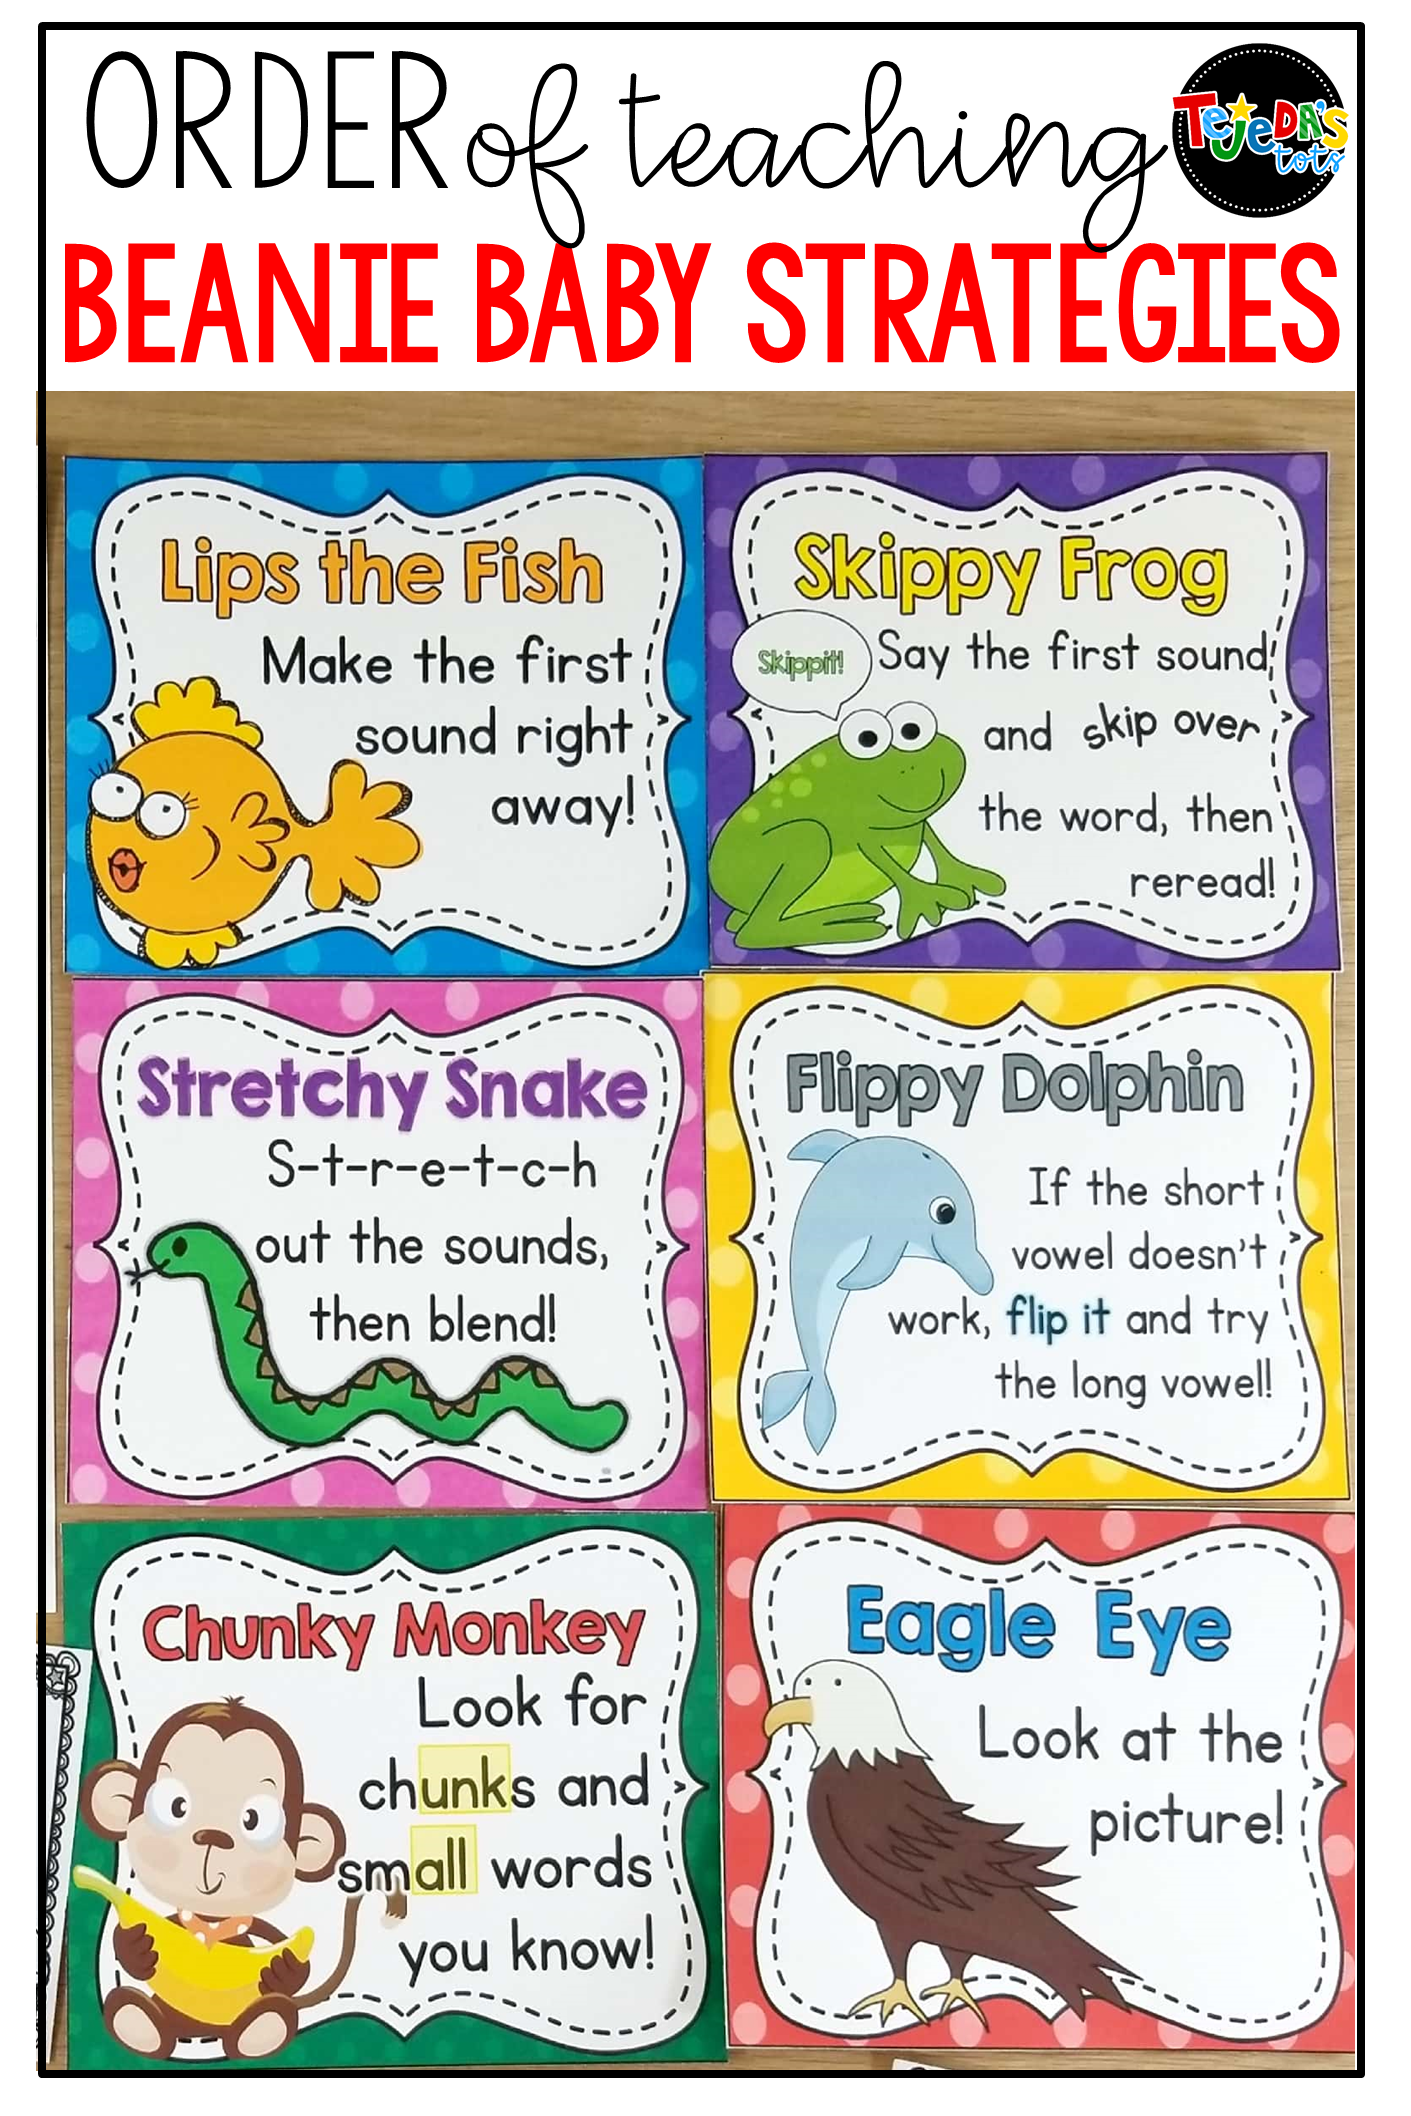 Order Of Teaching Beanie Baby Strategies